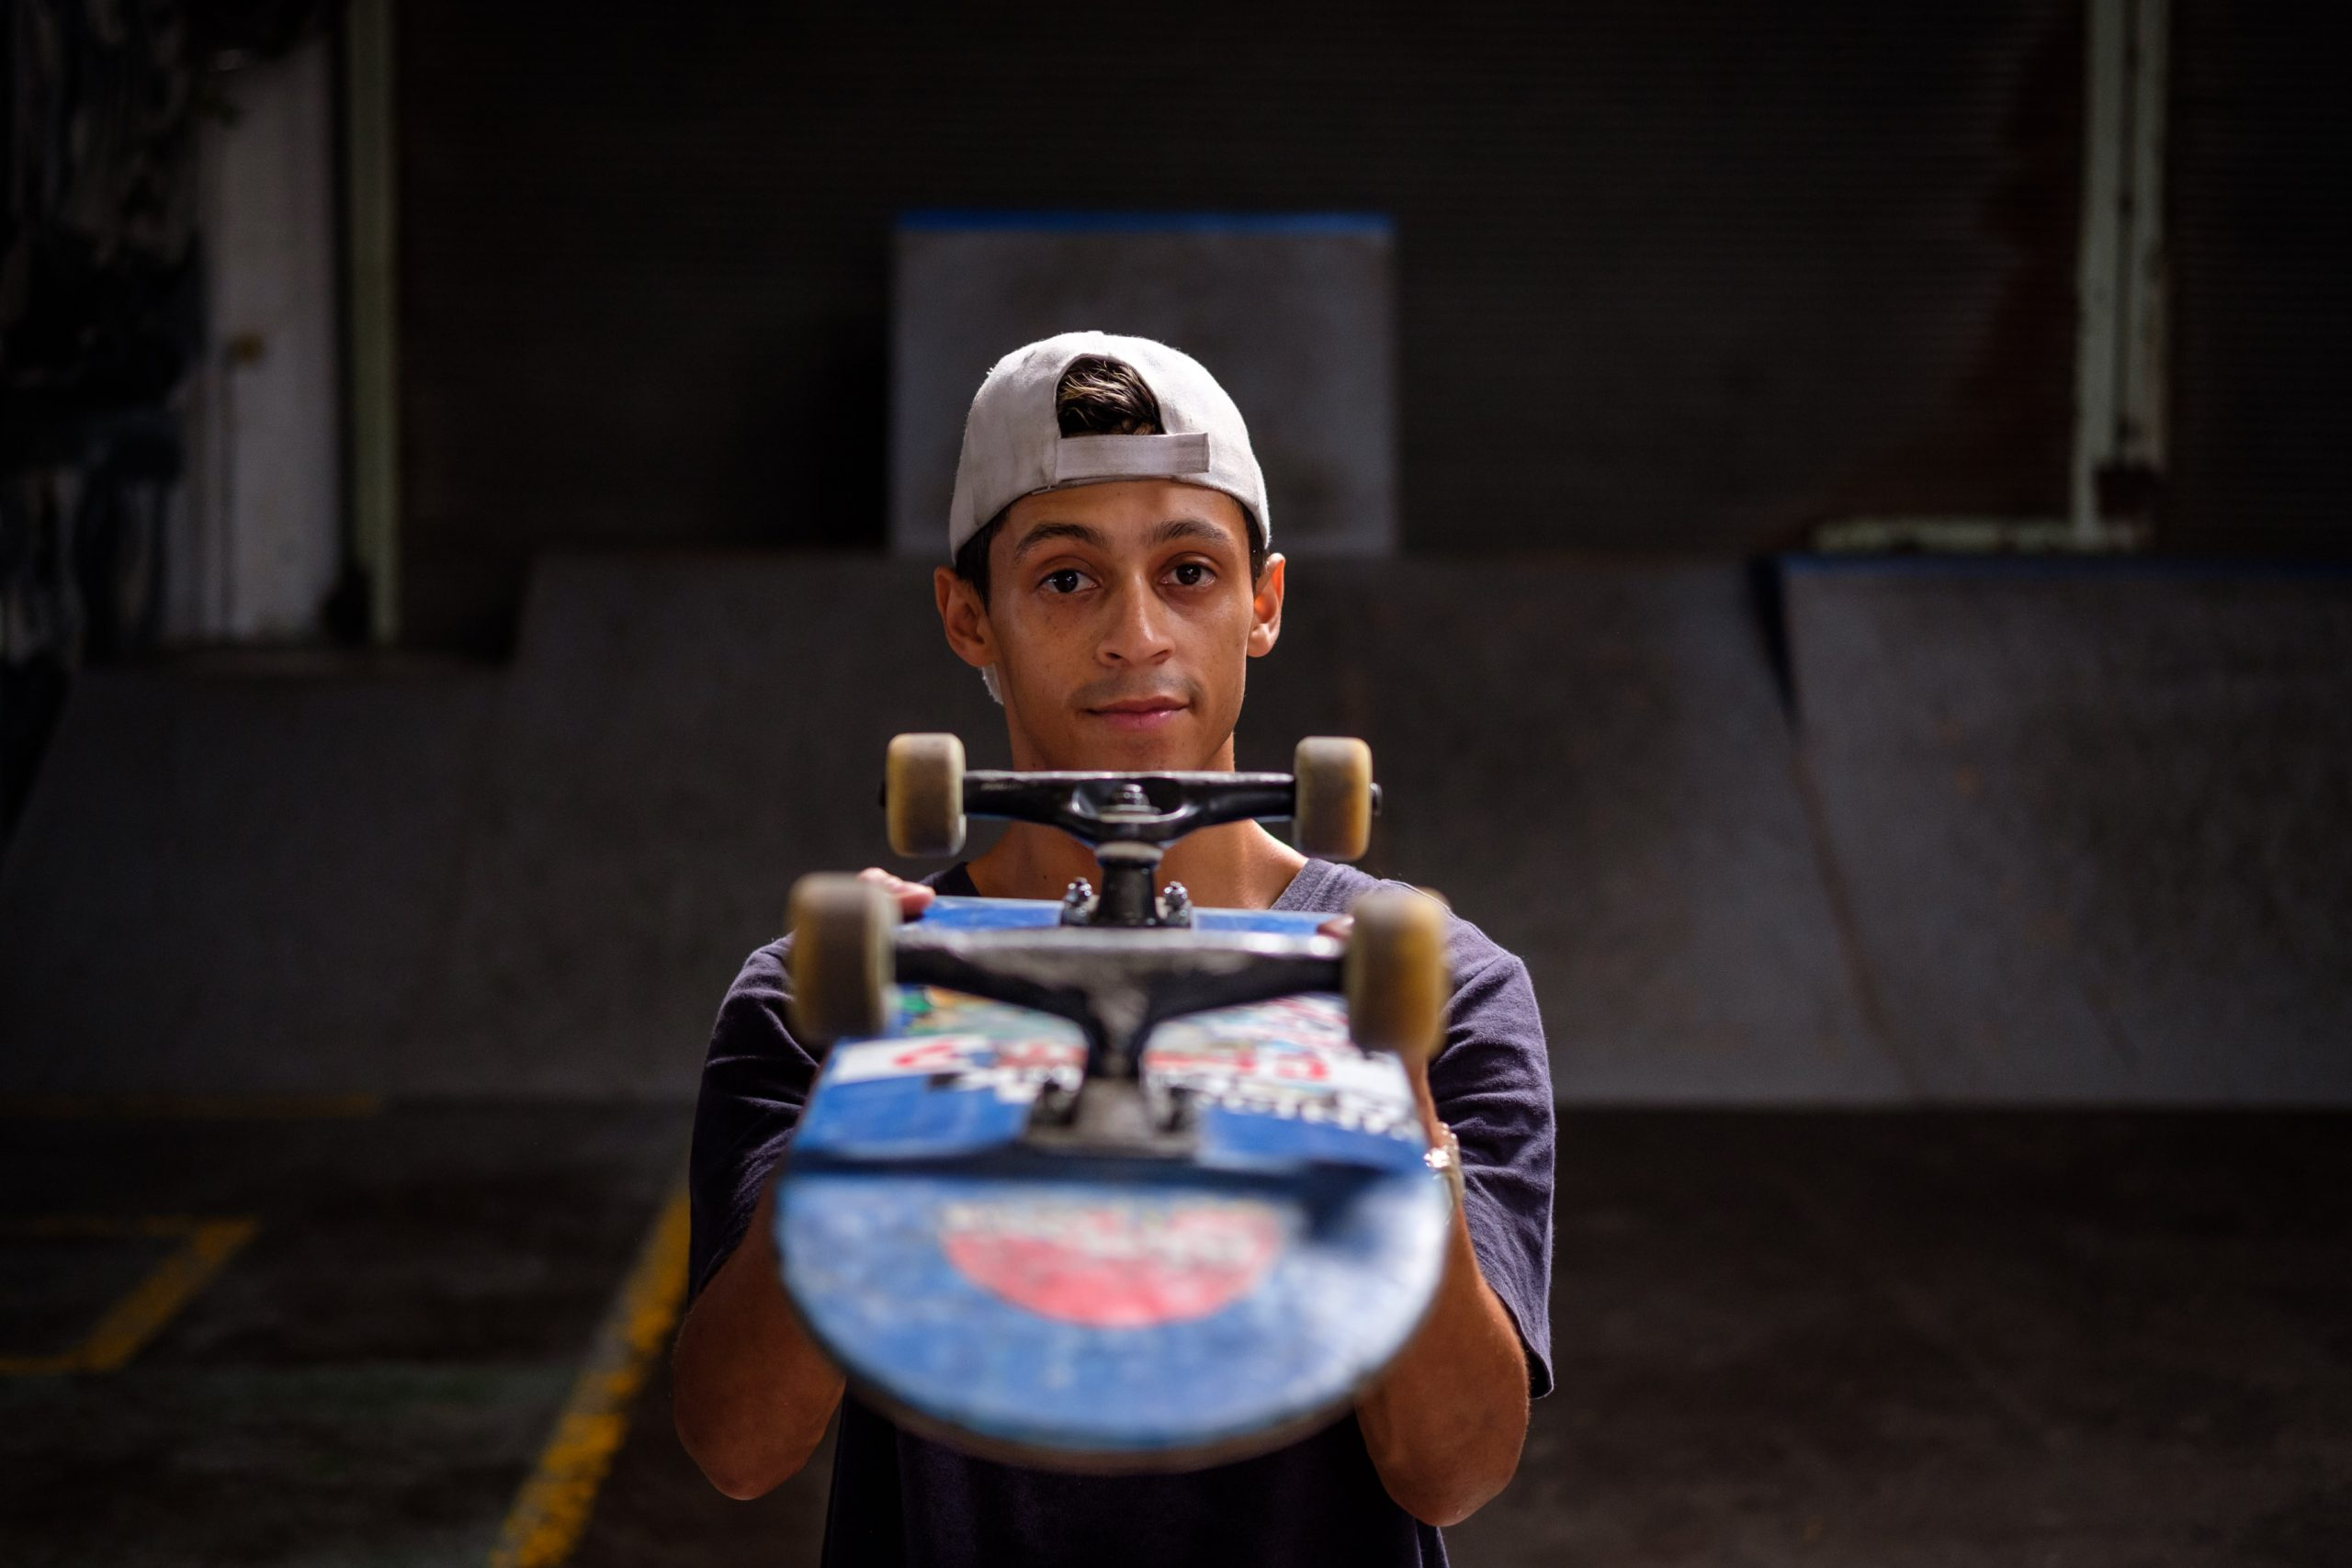 20 February 2020: Skateboarding makes its debut at this year's Olympic Games and Jean-marc Johannes has his sights set on representing South Africa.